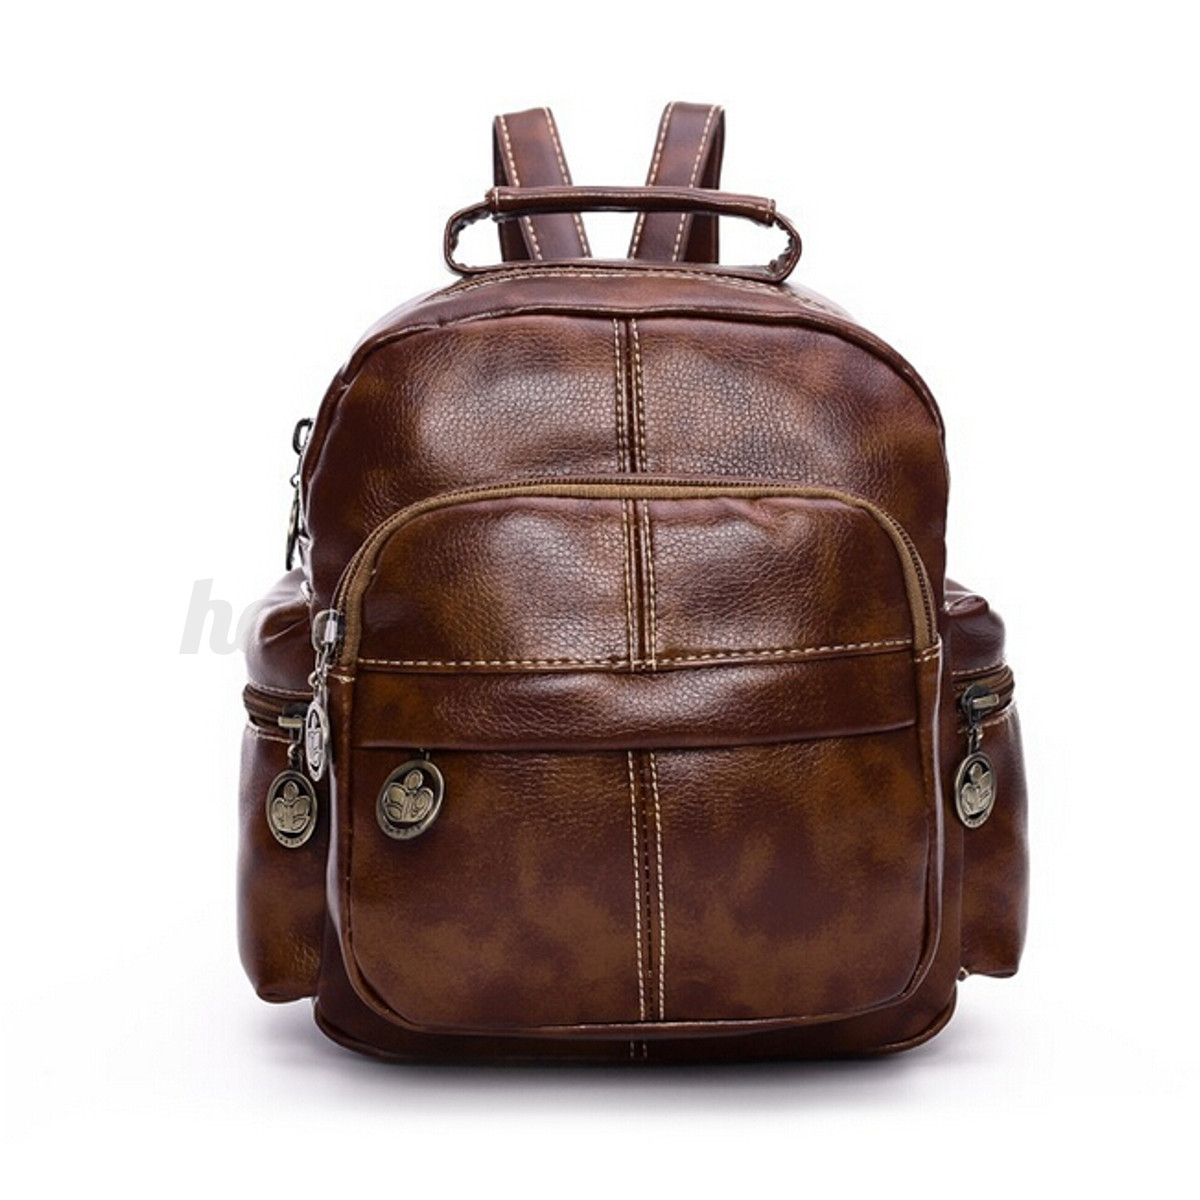 Fashion Women Vintage Mini Leather Travel Backpack Tote